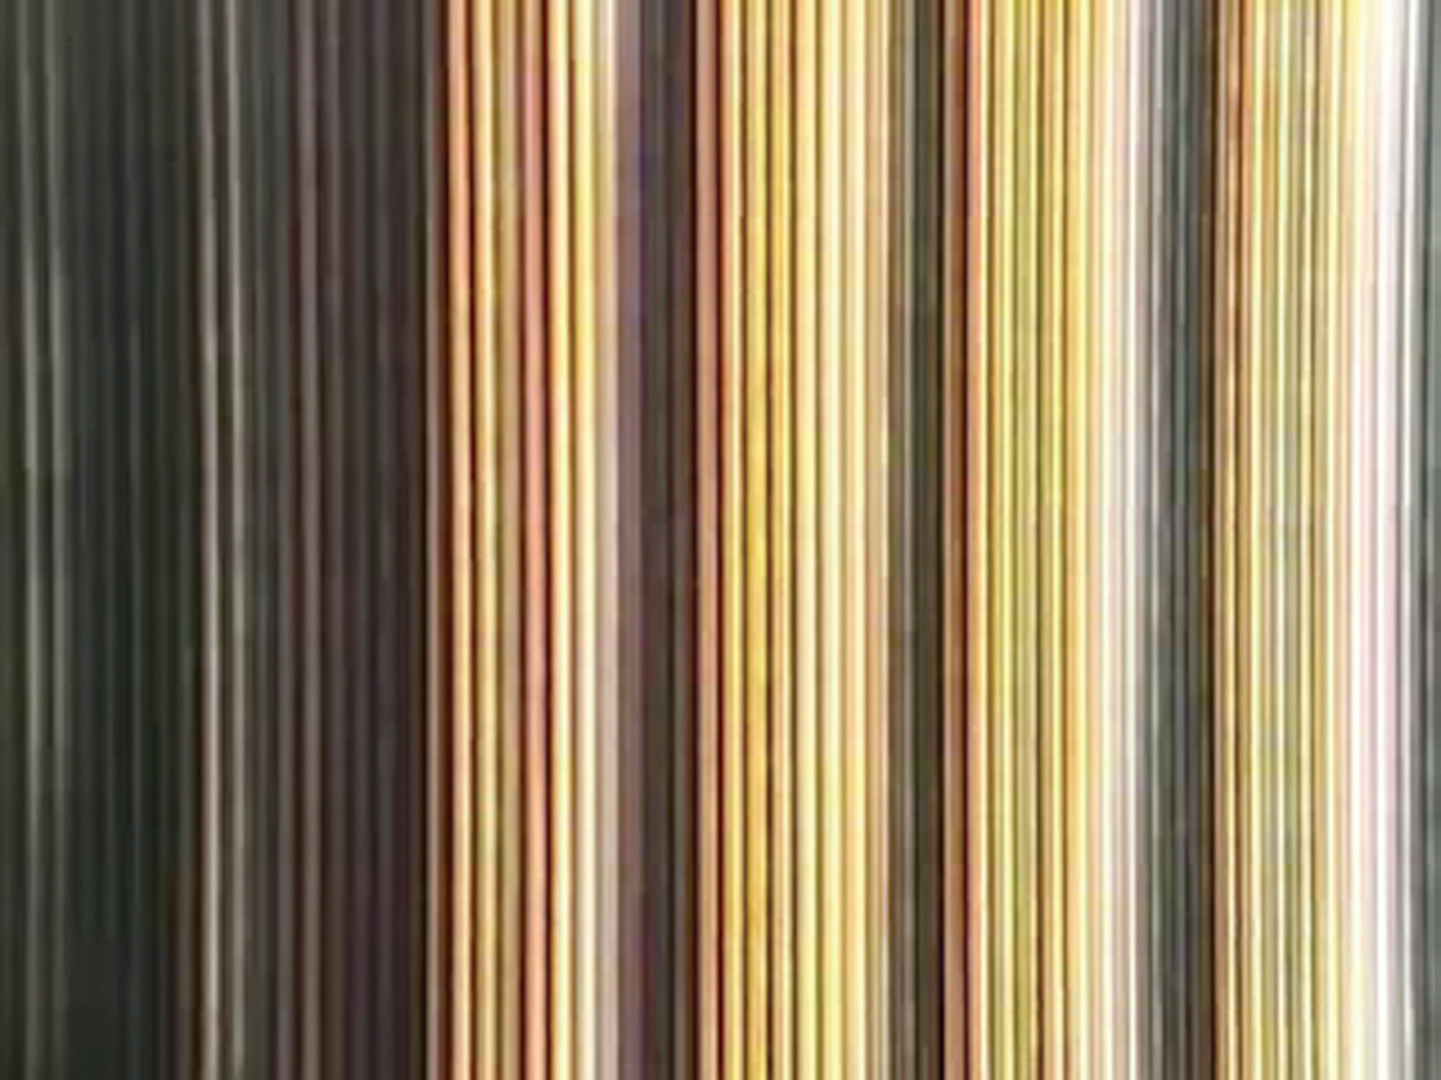 ©1993, Philip Galanter, Untitled (Cables) V072739A